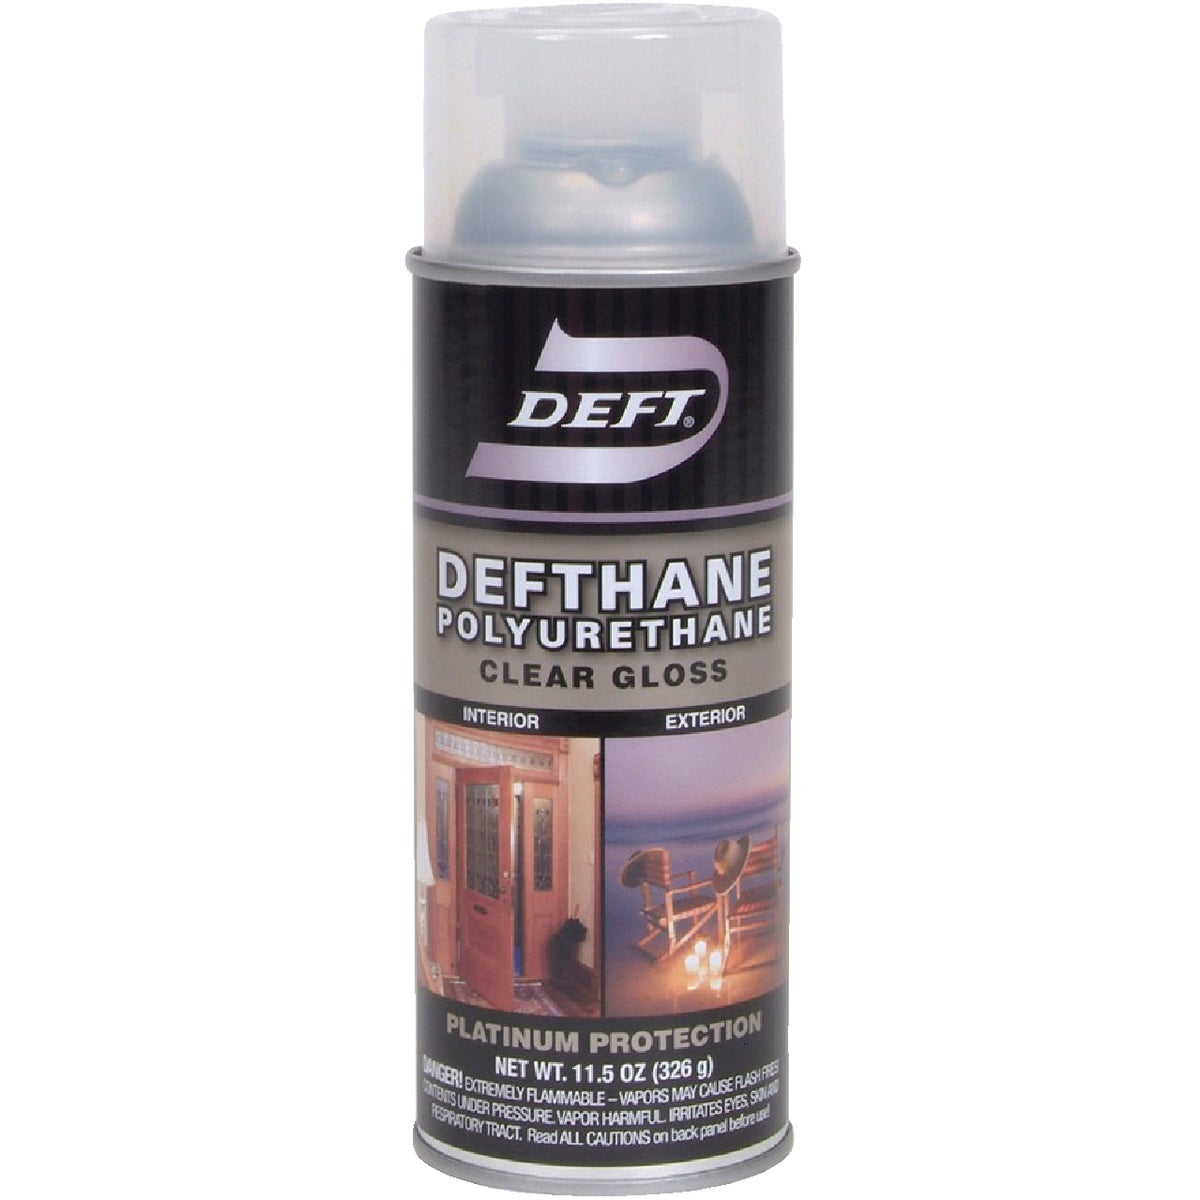 GLOSS DEFTHANE SPRAY - DFT020/54 by Deft